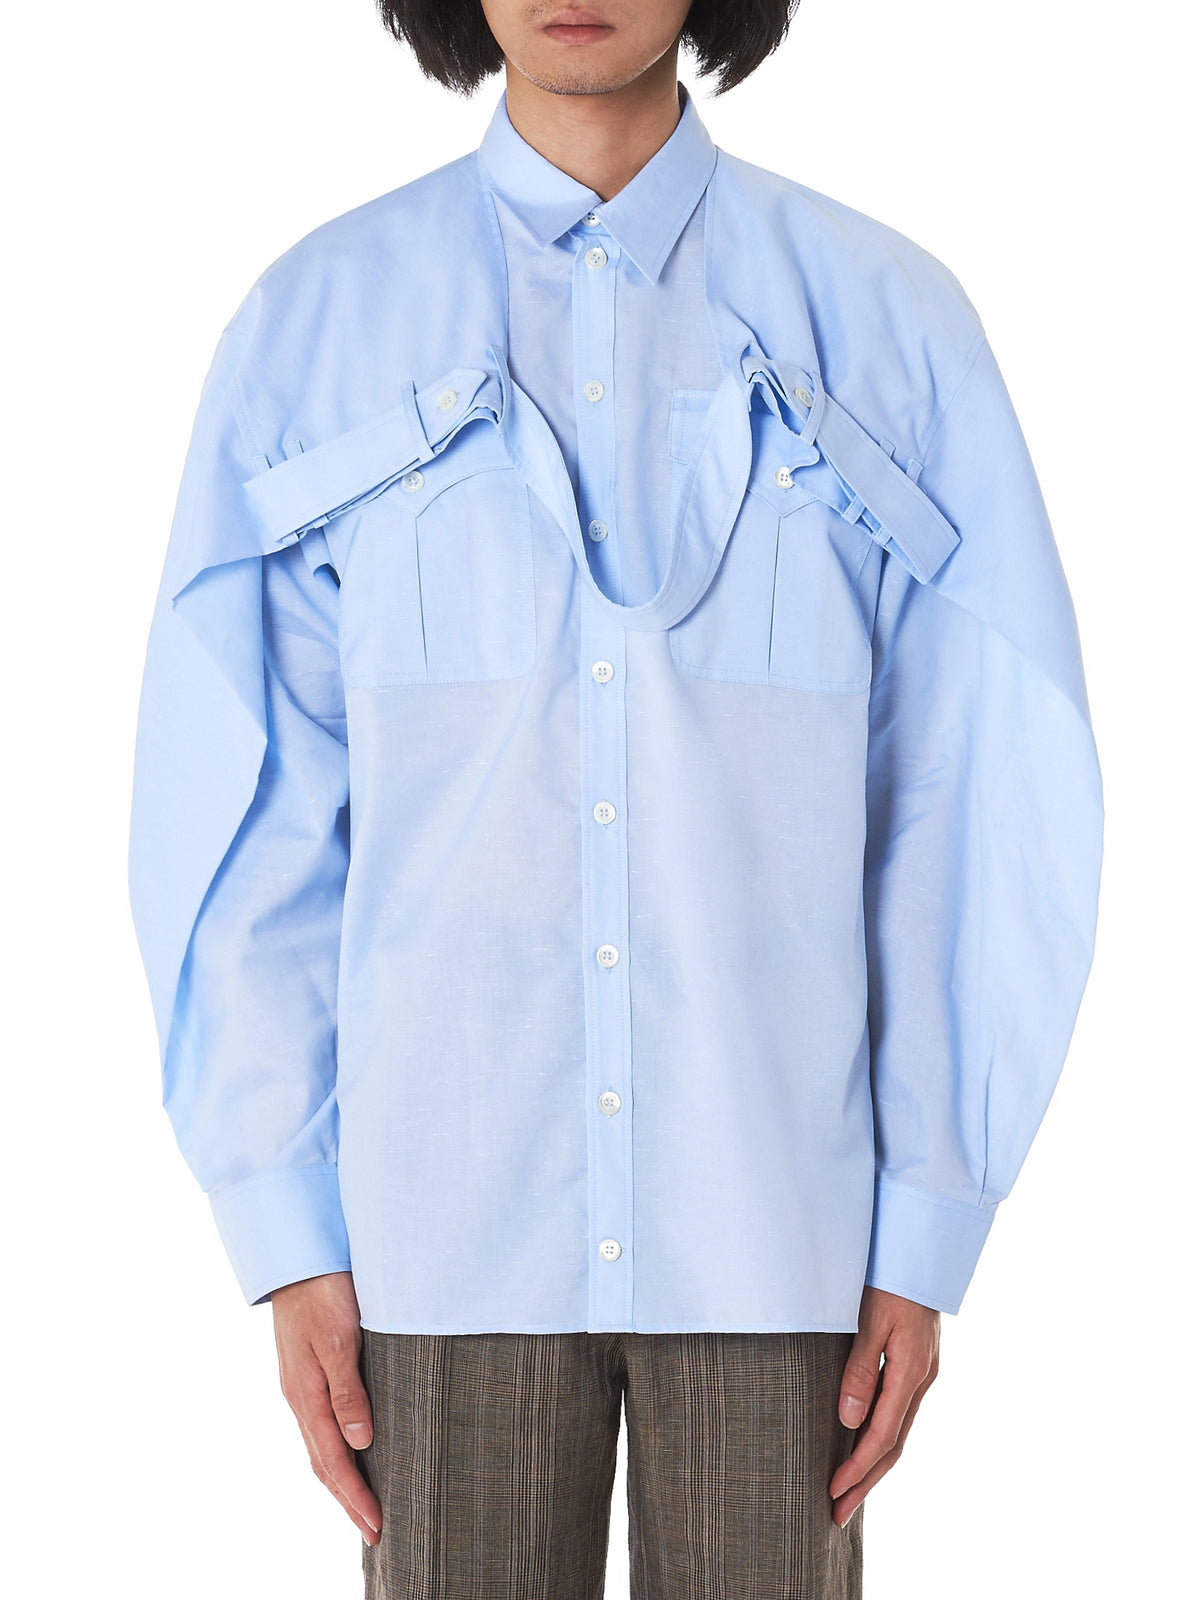 Y/Project Shirt - Hlorenzo front